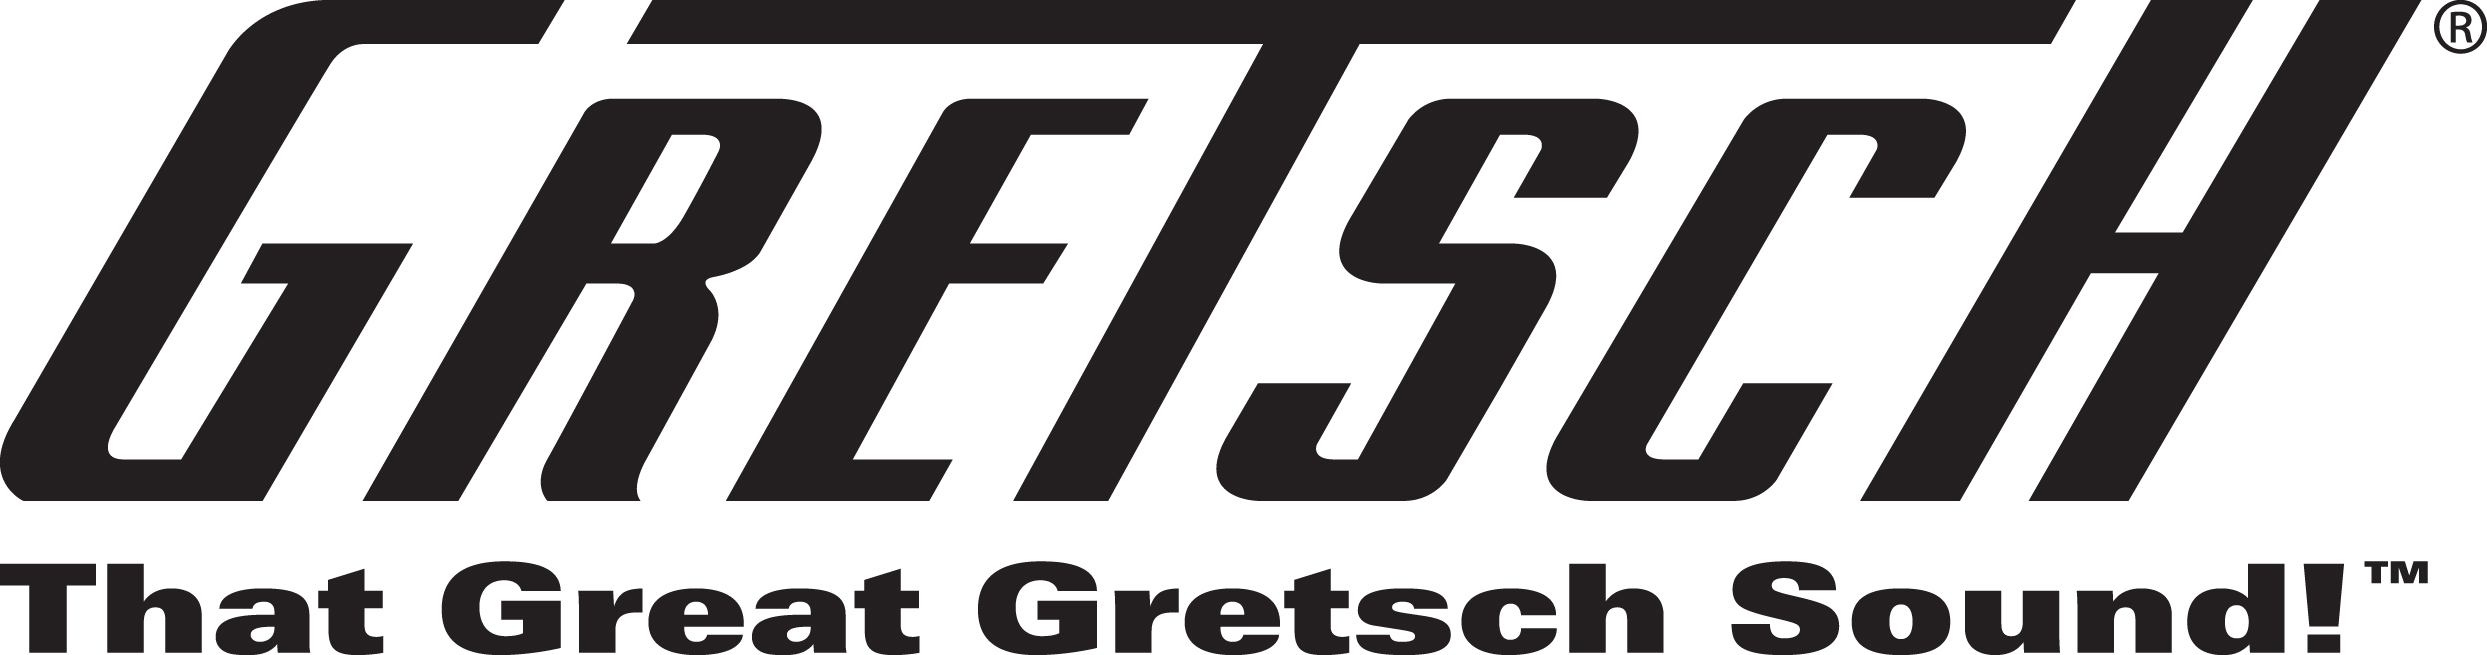 Gretsch guitar distribution